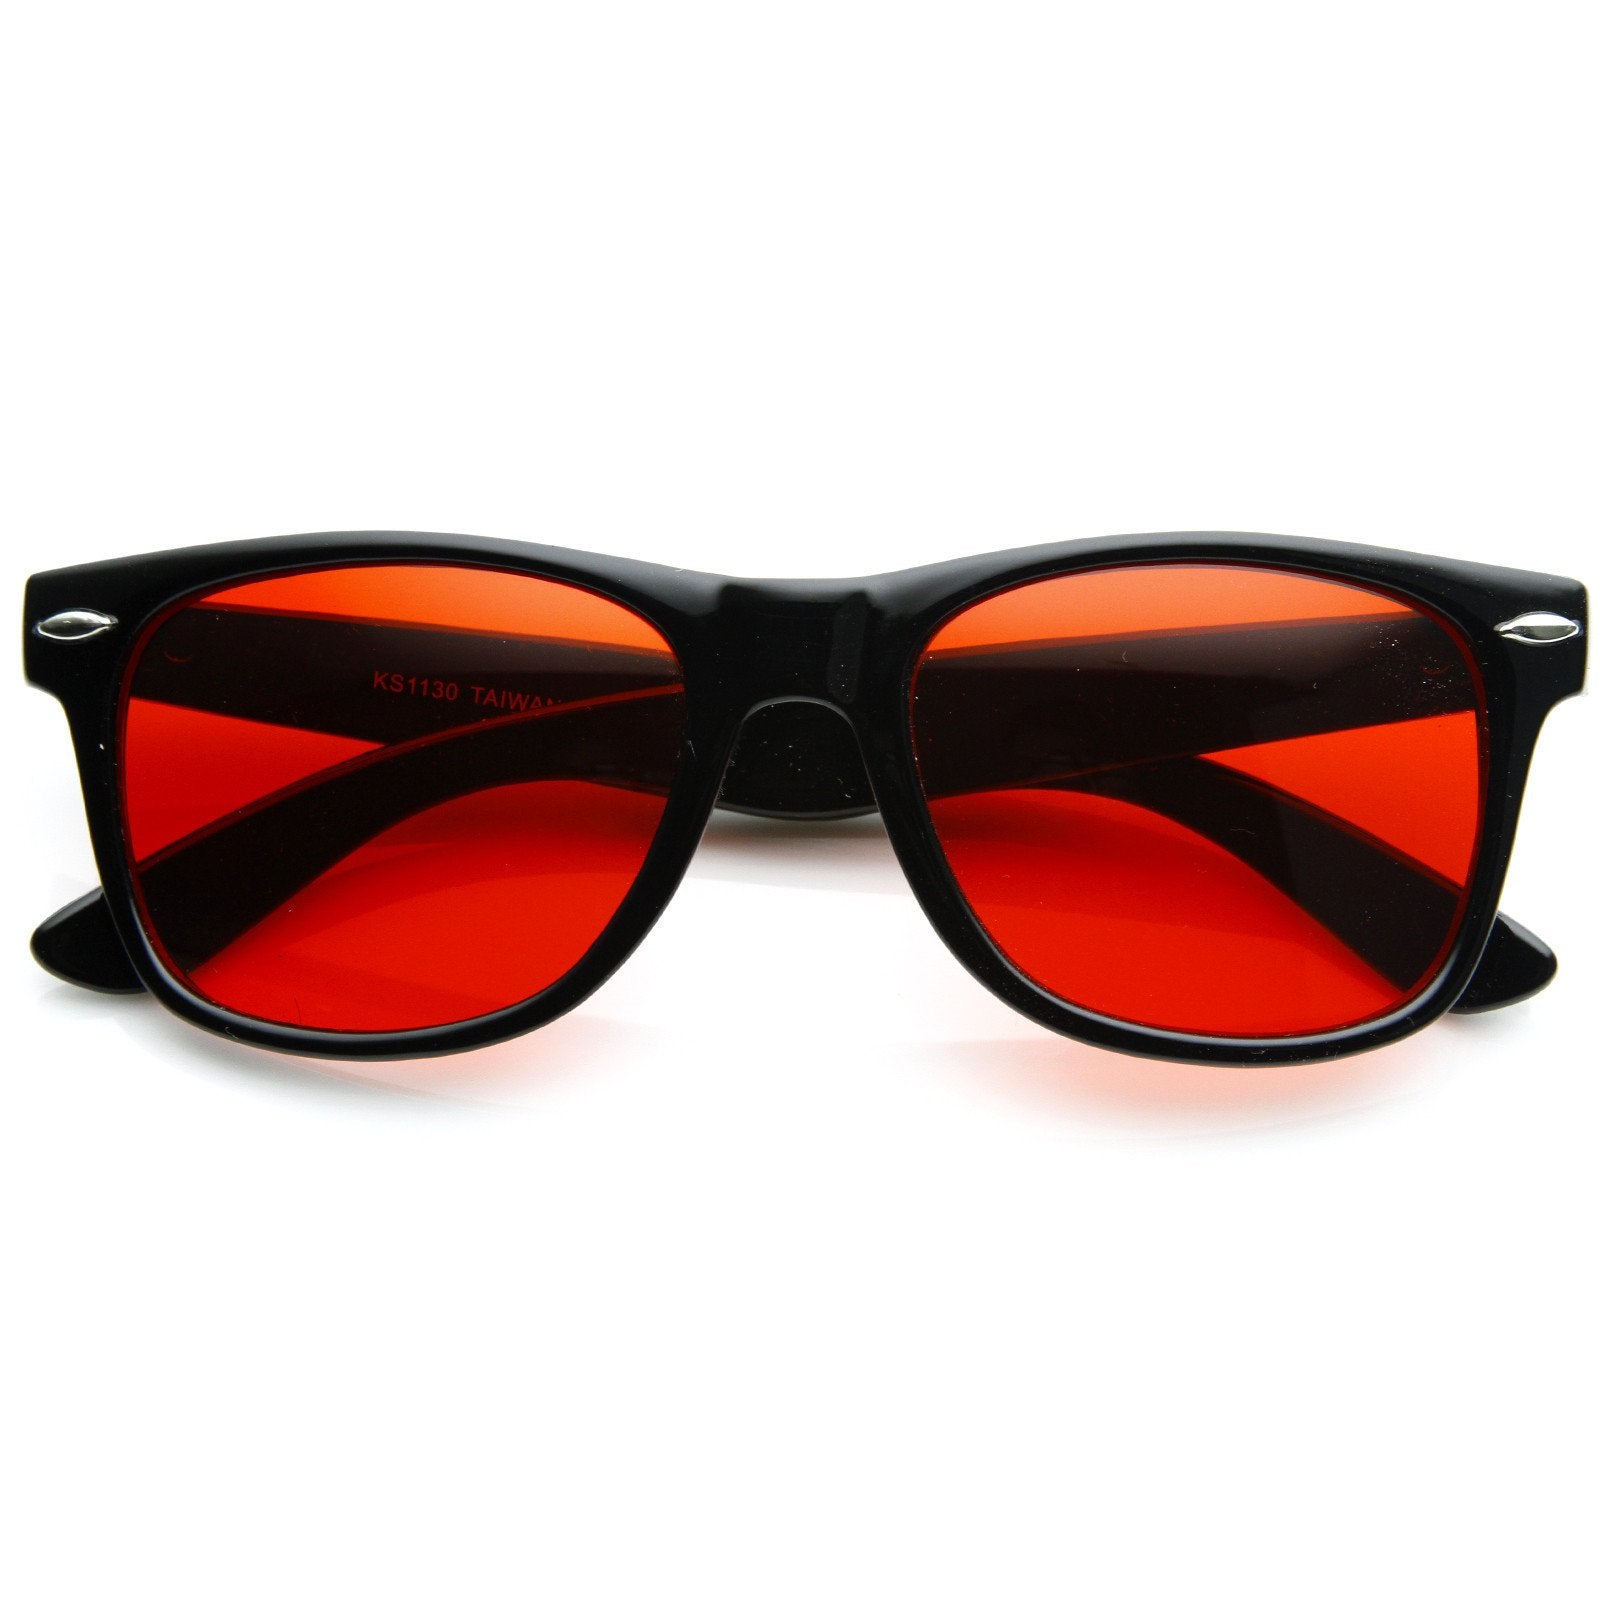 7131c04f92 Party Novelty Costume Sunglasses Tagged